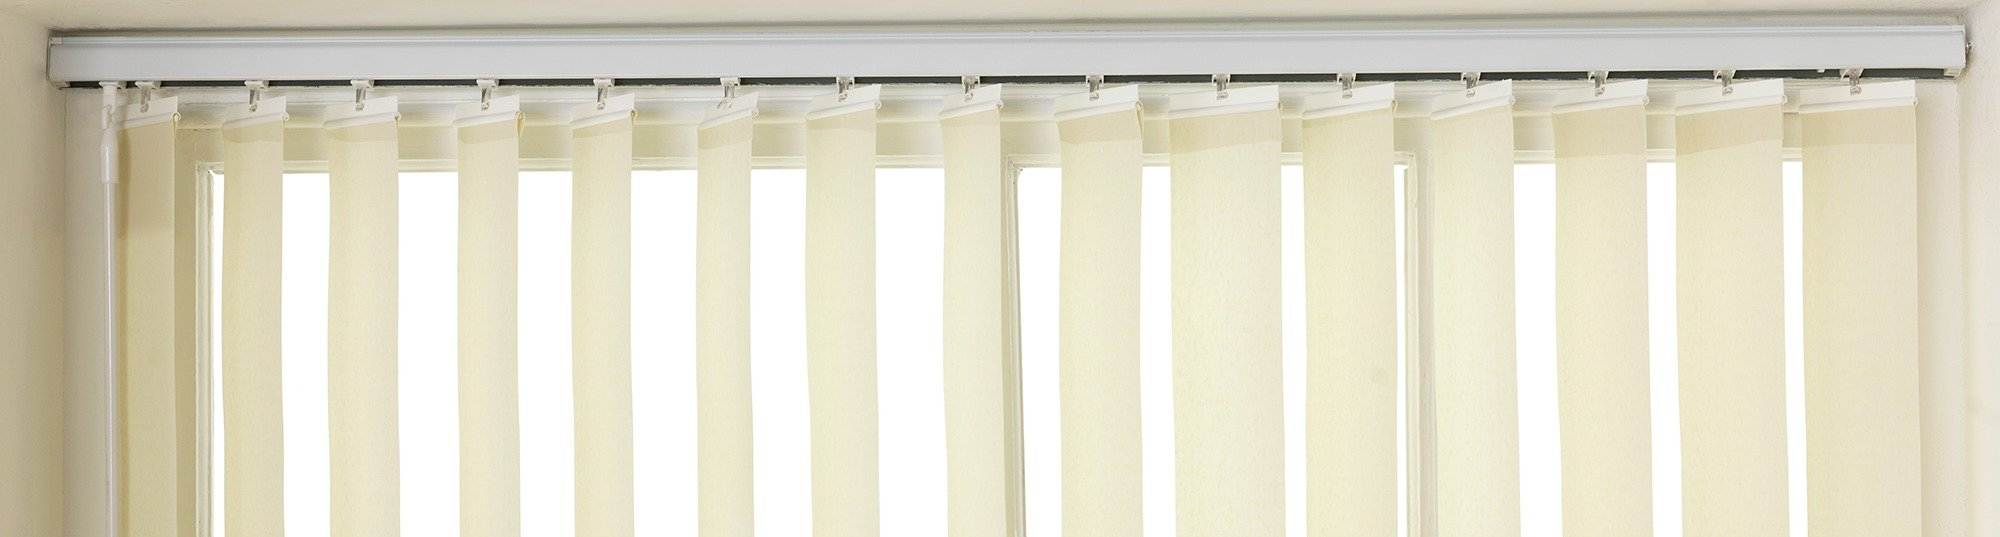 Argos Home Vertical Blind Headrail - 6ft